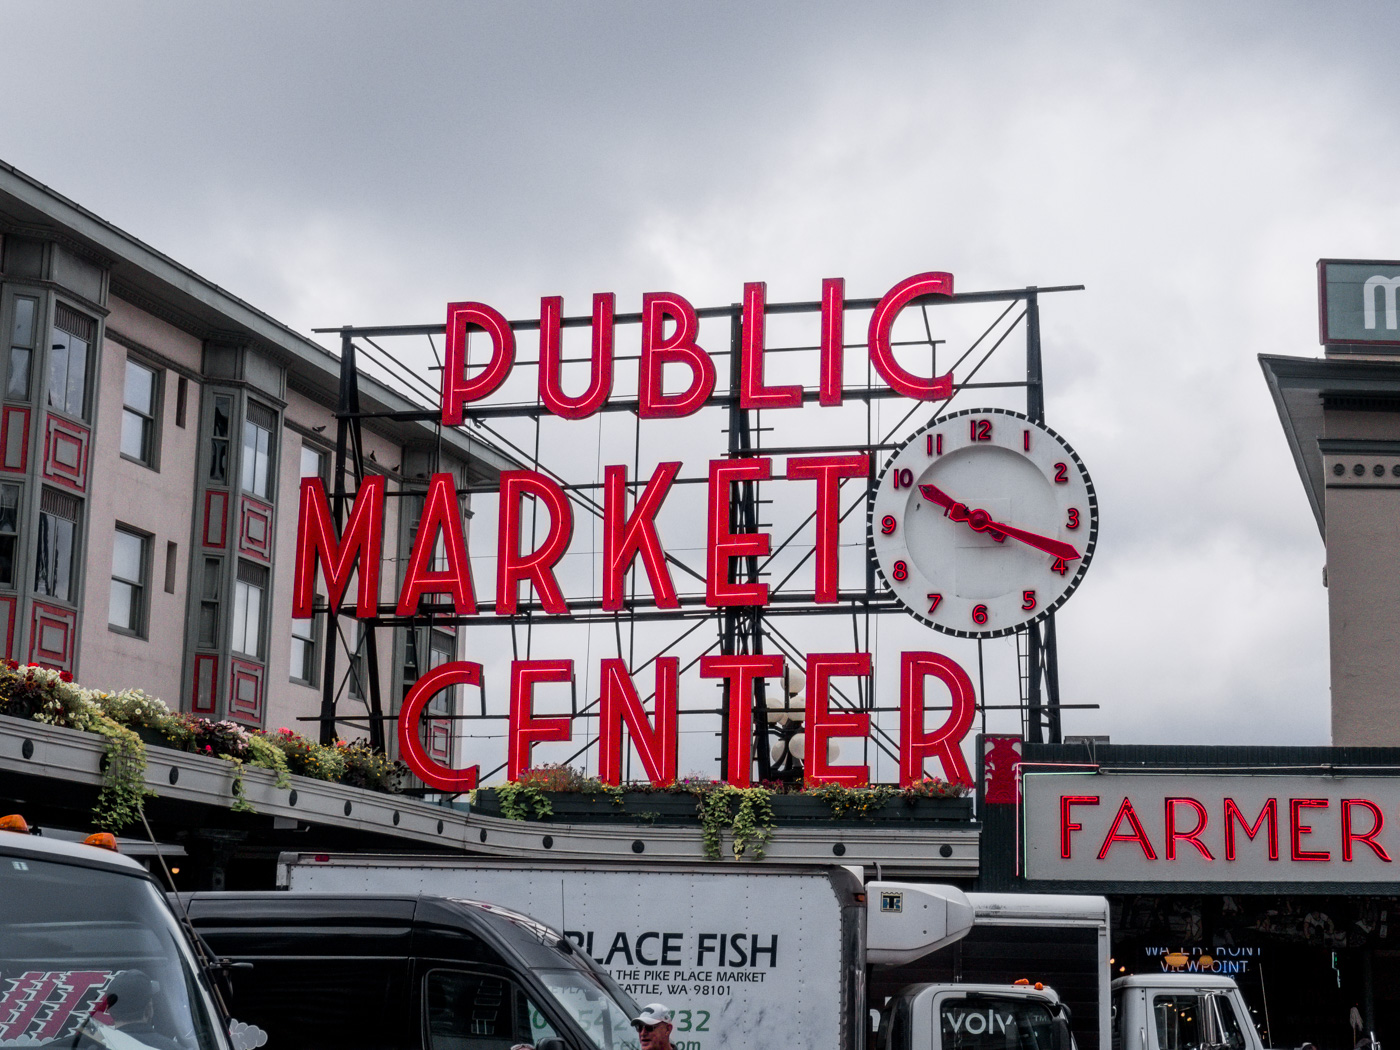 A weekend guide to Seattle - exploring the Pike Place Market